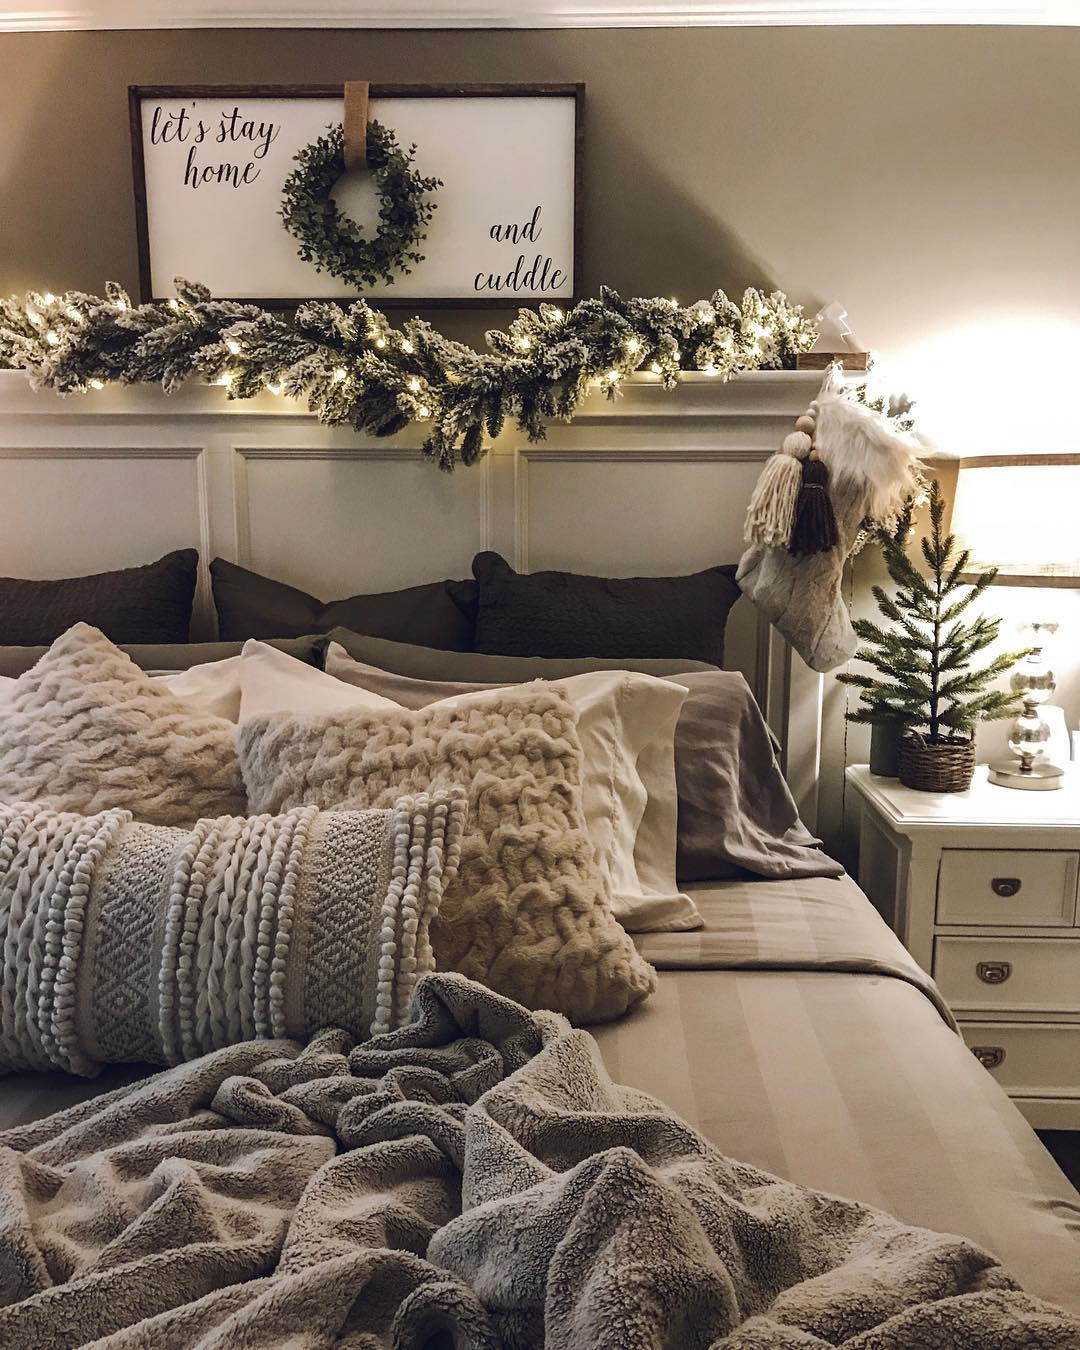 50 Trendy Cozy Christmas Bedroom Decorating Ideas #christmas #holidays #christmas